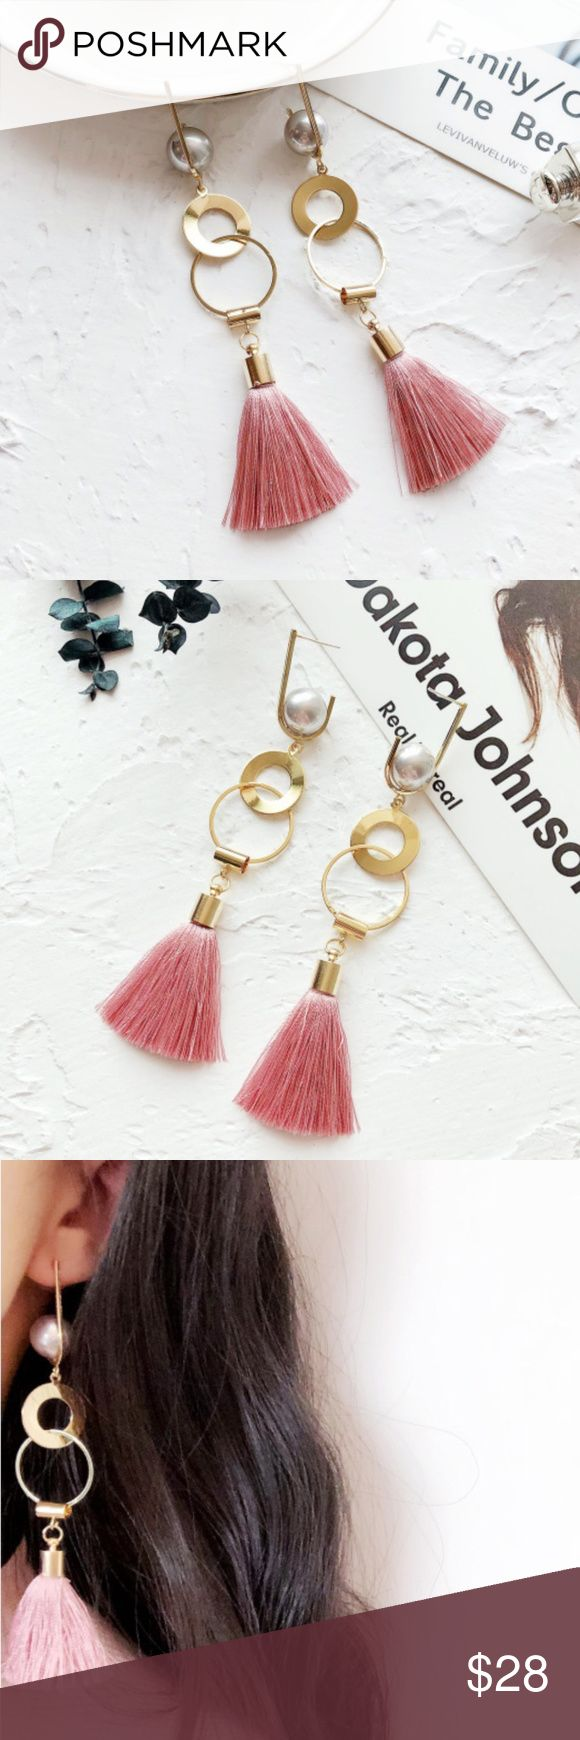 "Pink Tassels Gold Hoops Geometric Drop Earrings These dangle earrings are very trendy and include various gold hoops, a white faux pearl and pink tassels as pictured. Makes a great statement piece!  Pink tassel earrings measure 4.75"" in length and the largest hoop width measures approximately .75"".  Let me know if you have any questions. Happy to help. :) Trendy Jewels Jewelry Earrings"